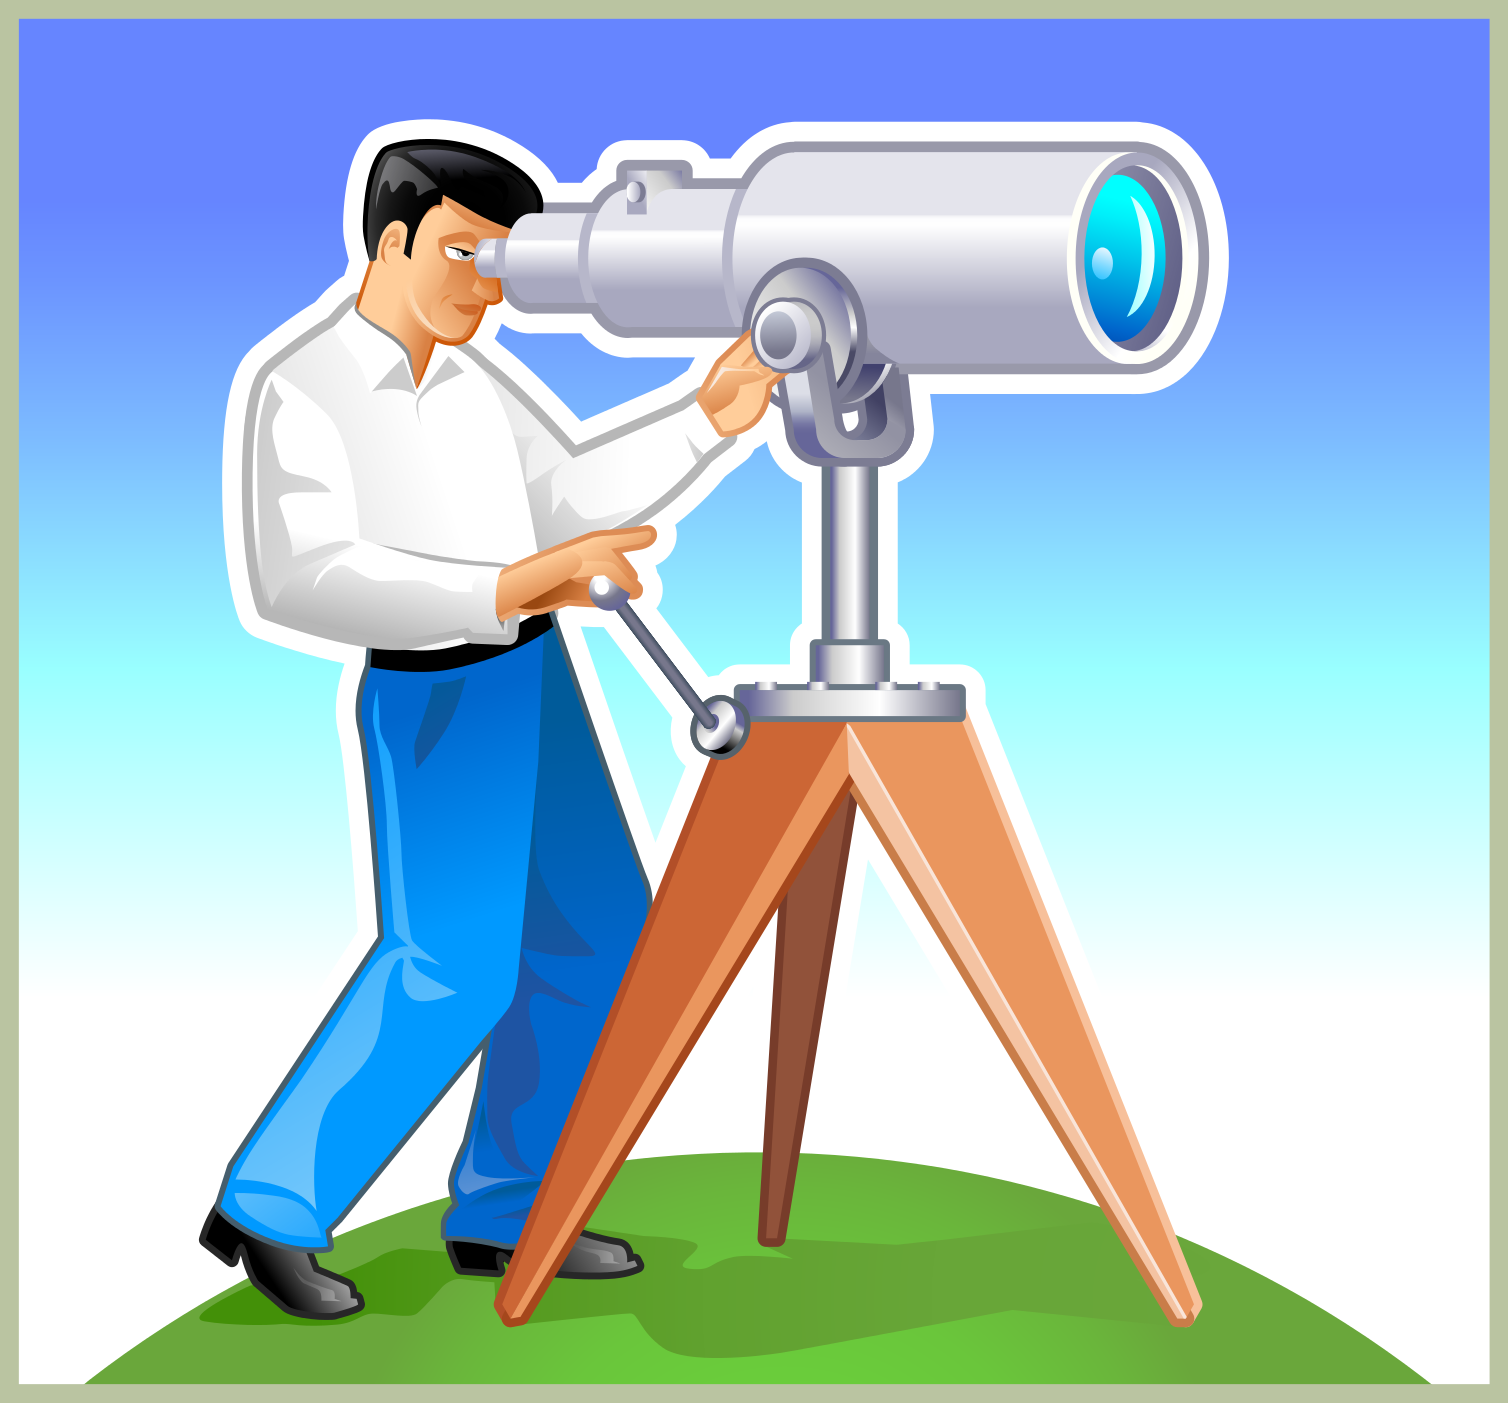 File:Astronomer.svg